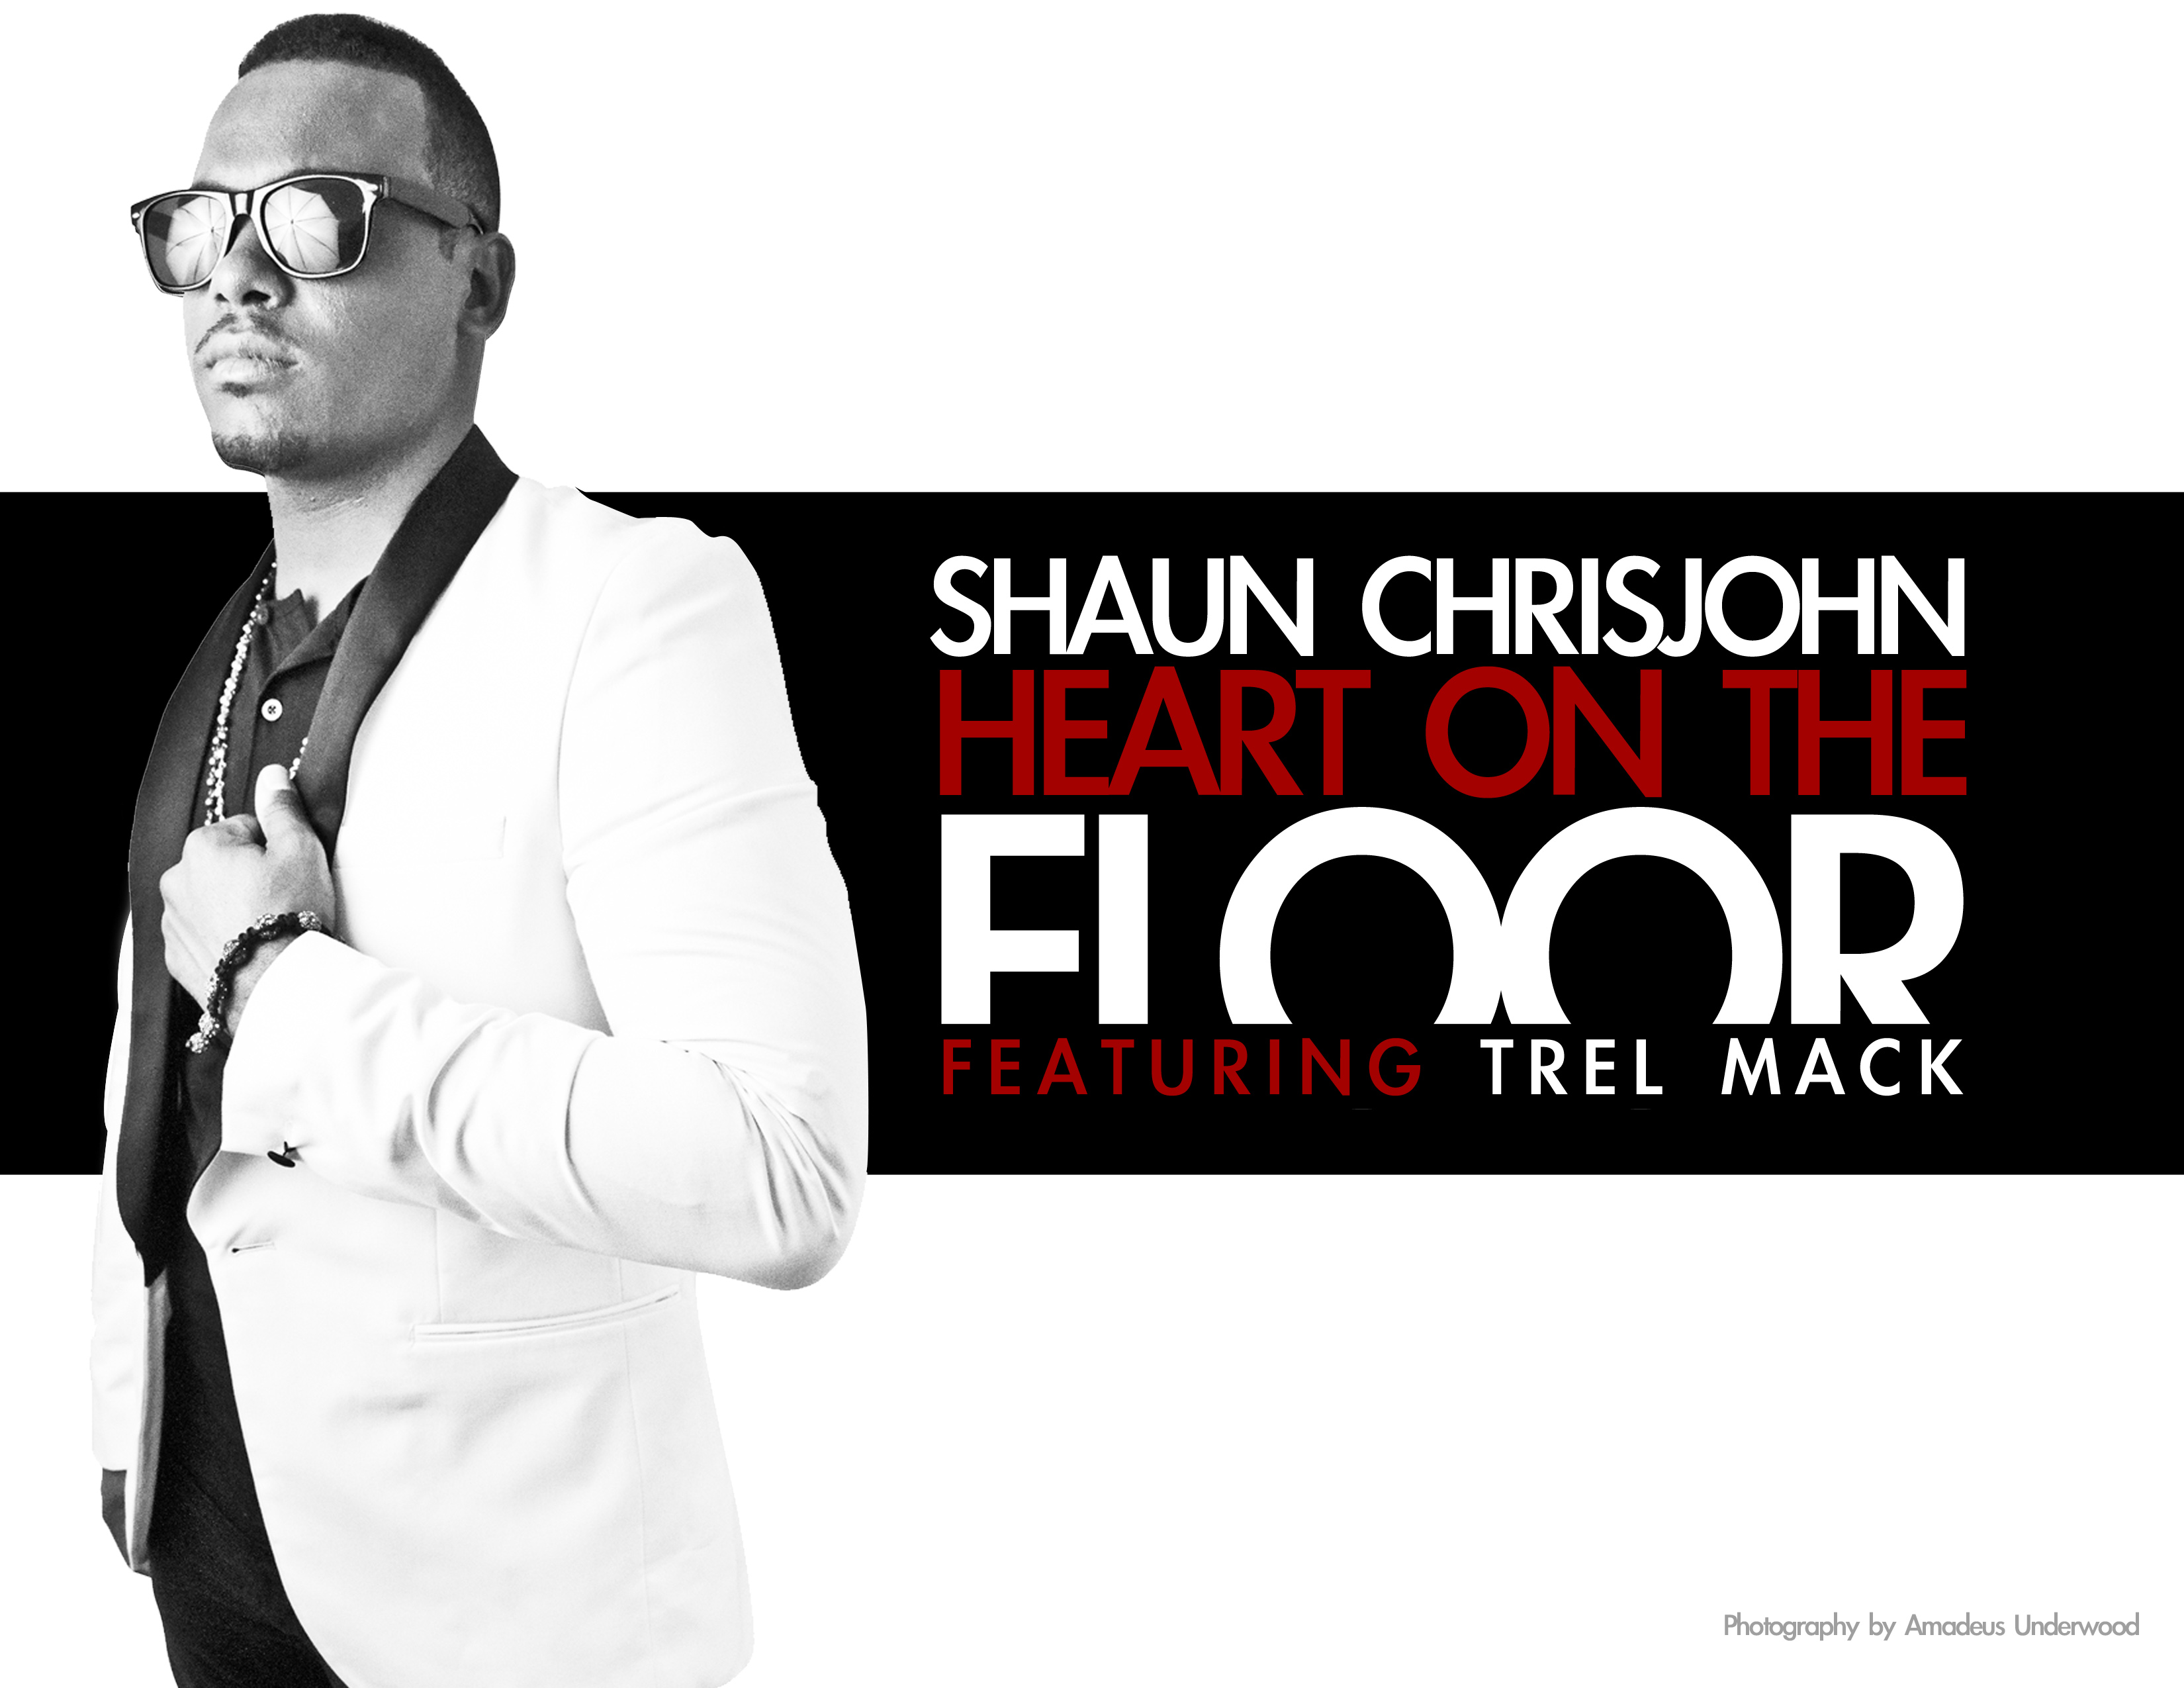 shaun-chris-john-heart-on-the-floor-featuring-trel-mack